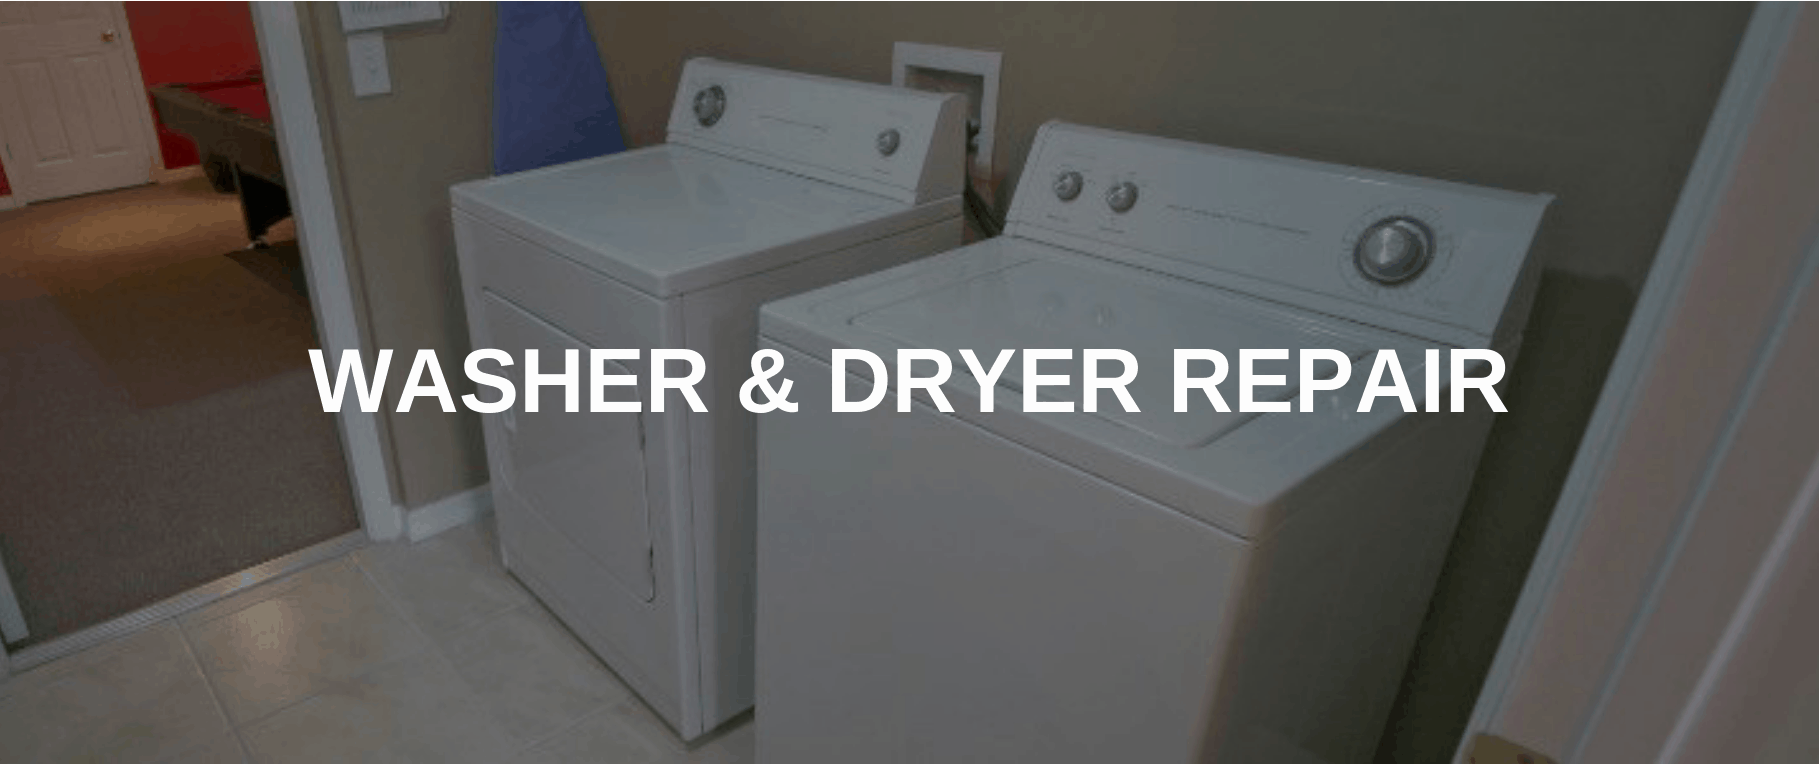 washing machine repair peoria